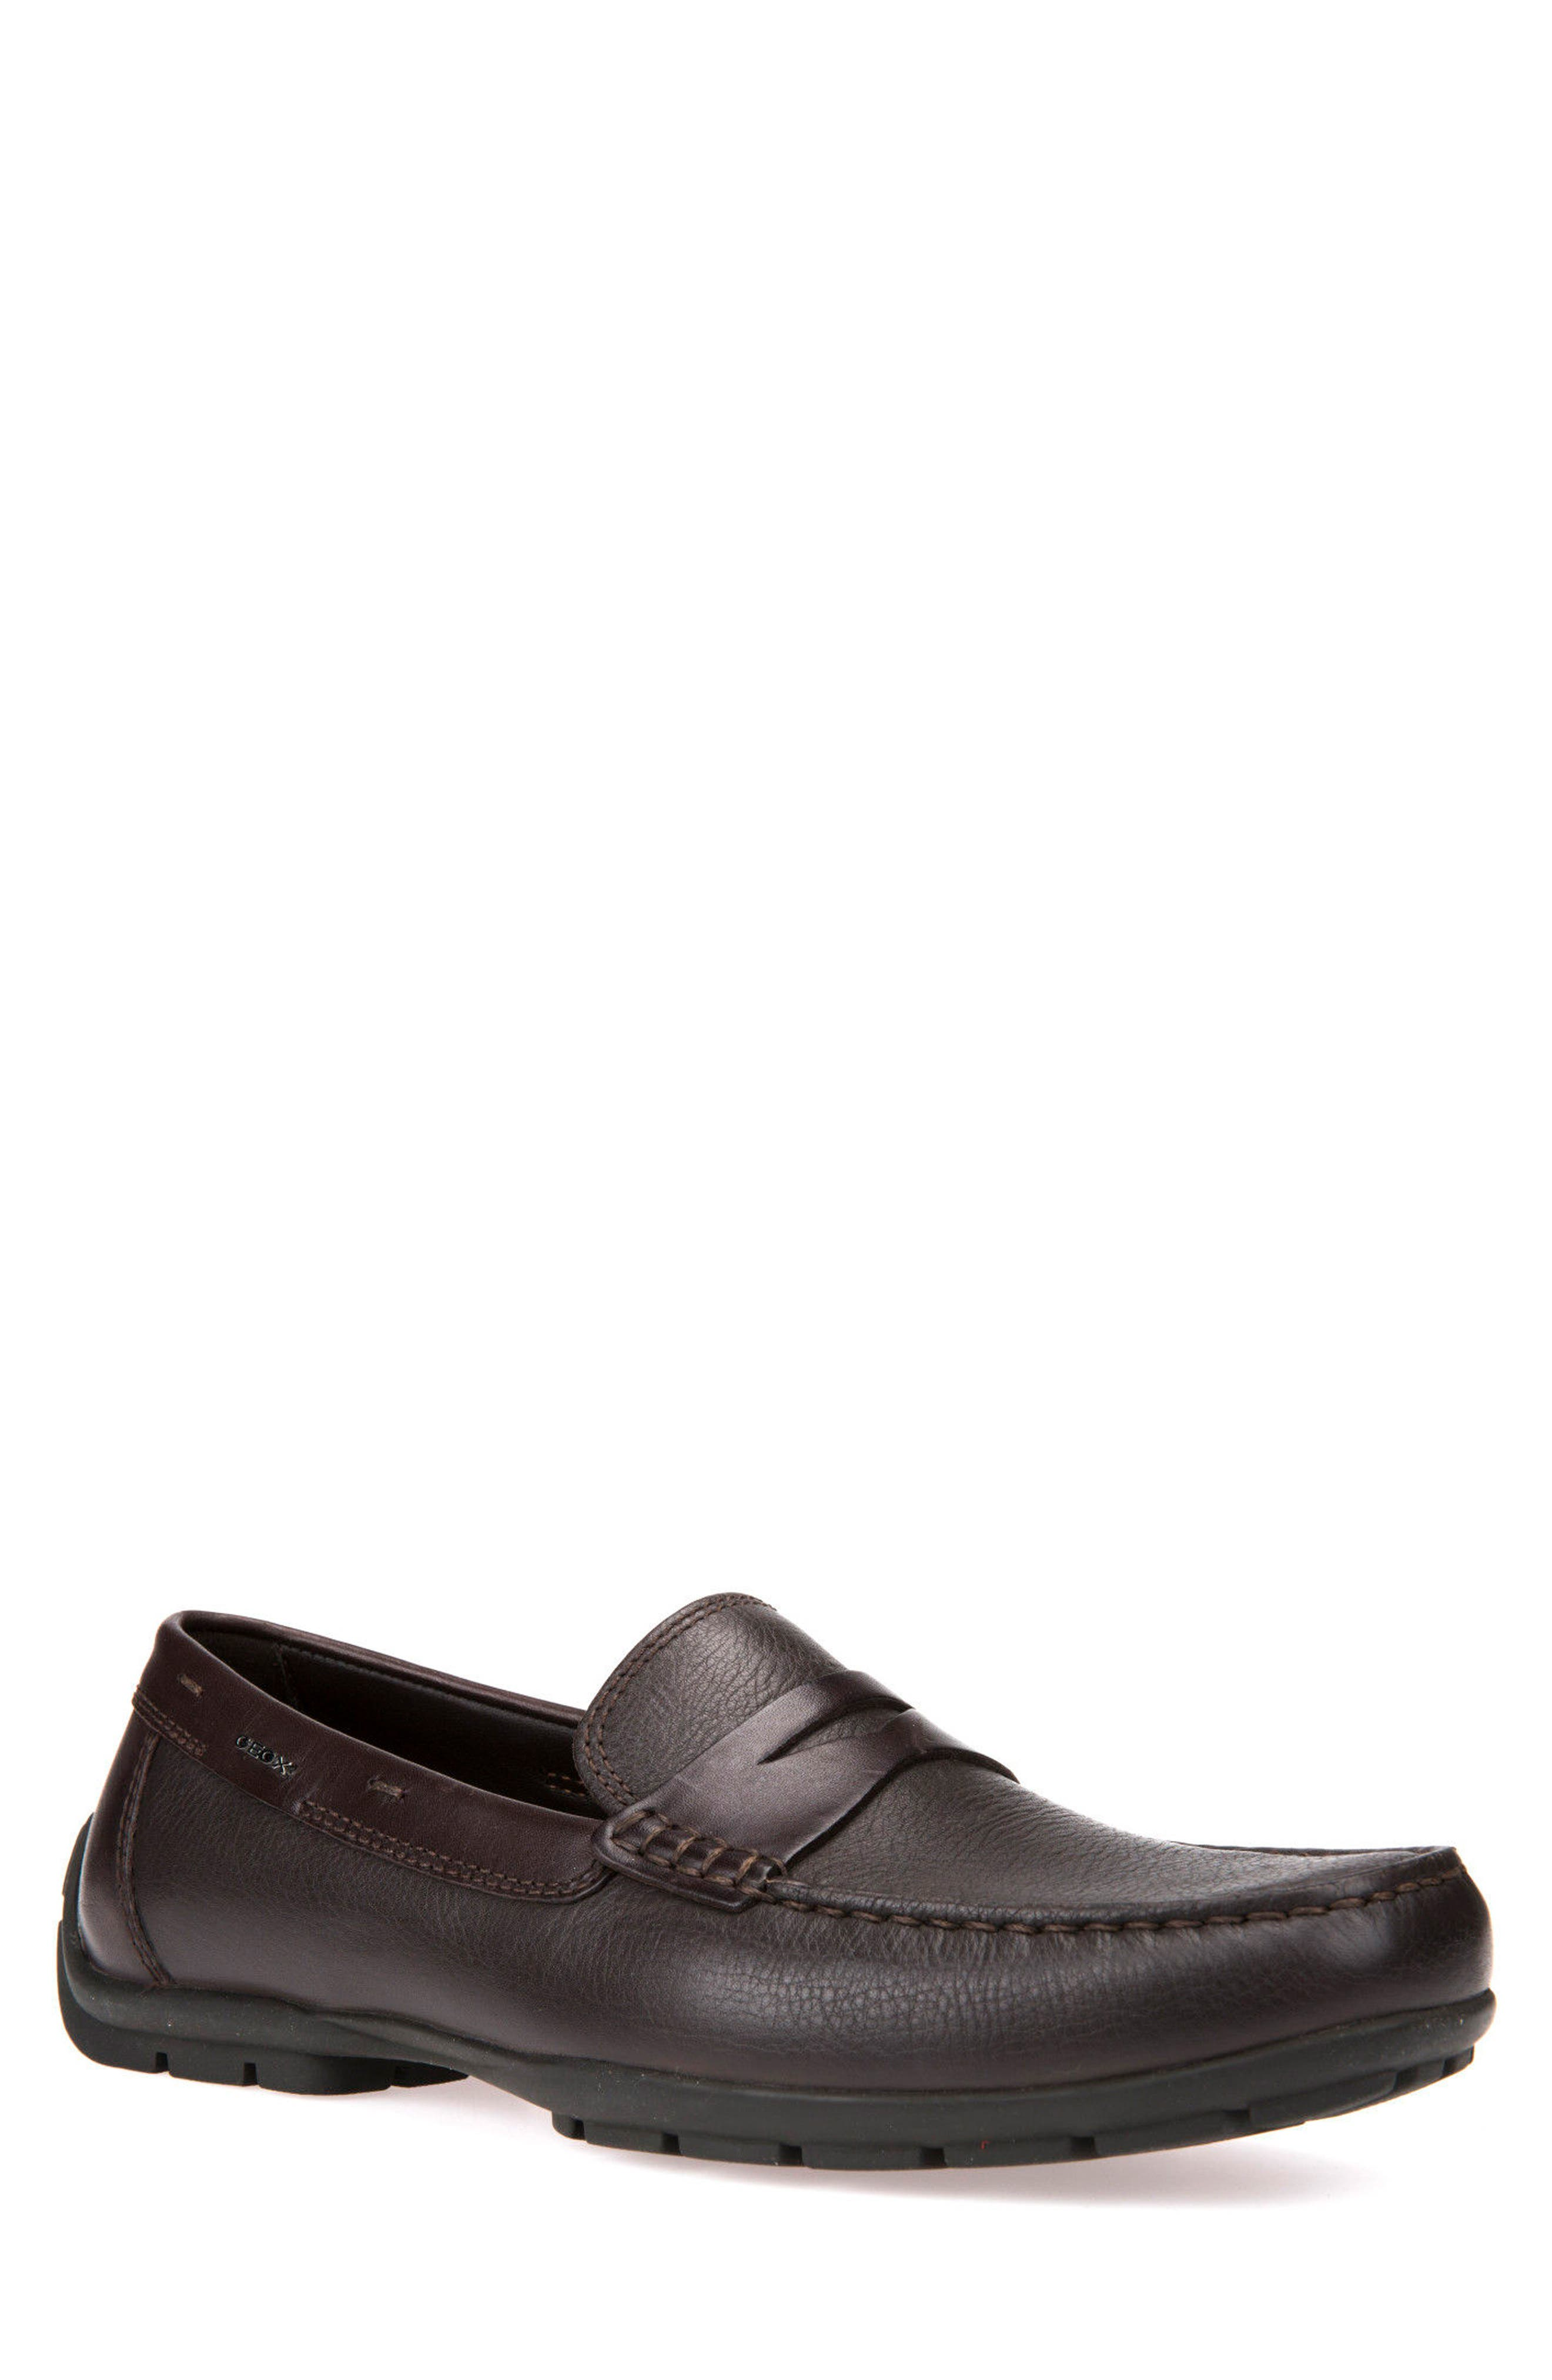 Monet W 2Fit Driving Moccasin,                         Main,                         color, Dark Coffee/ Coffee